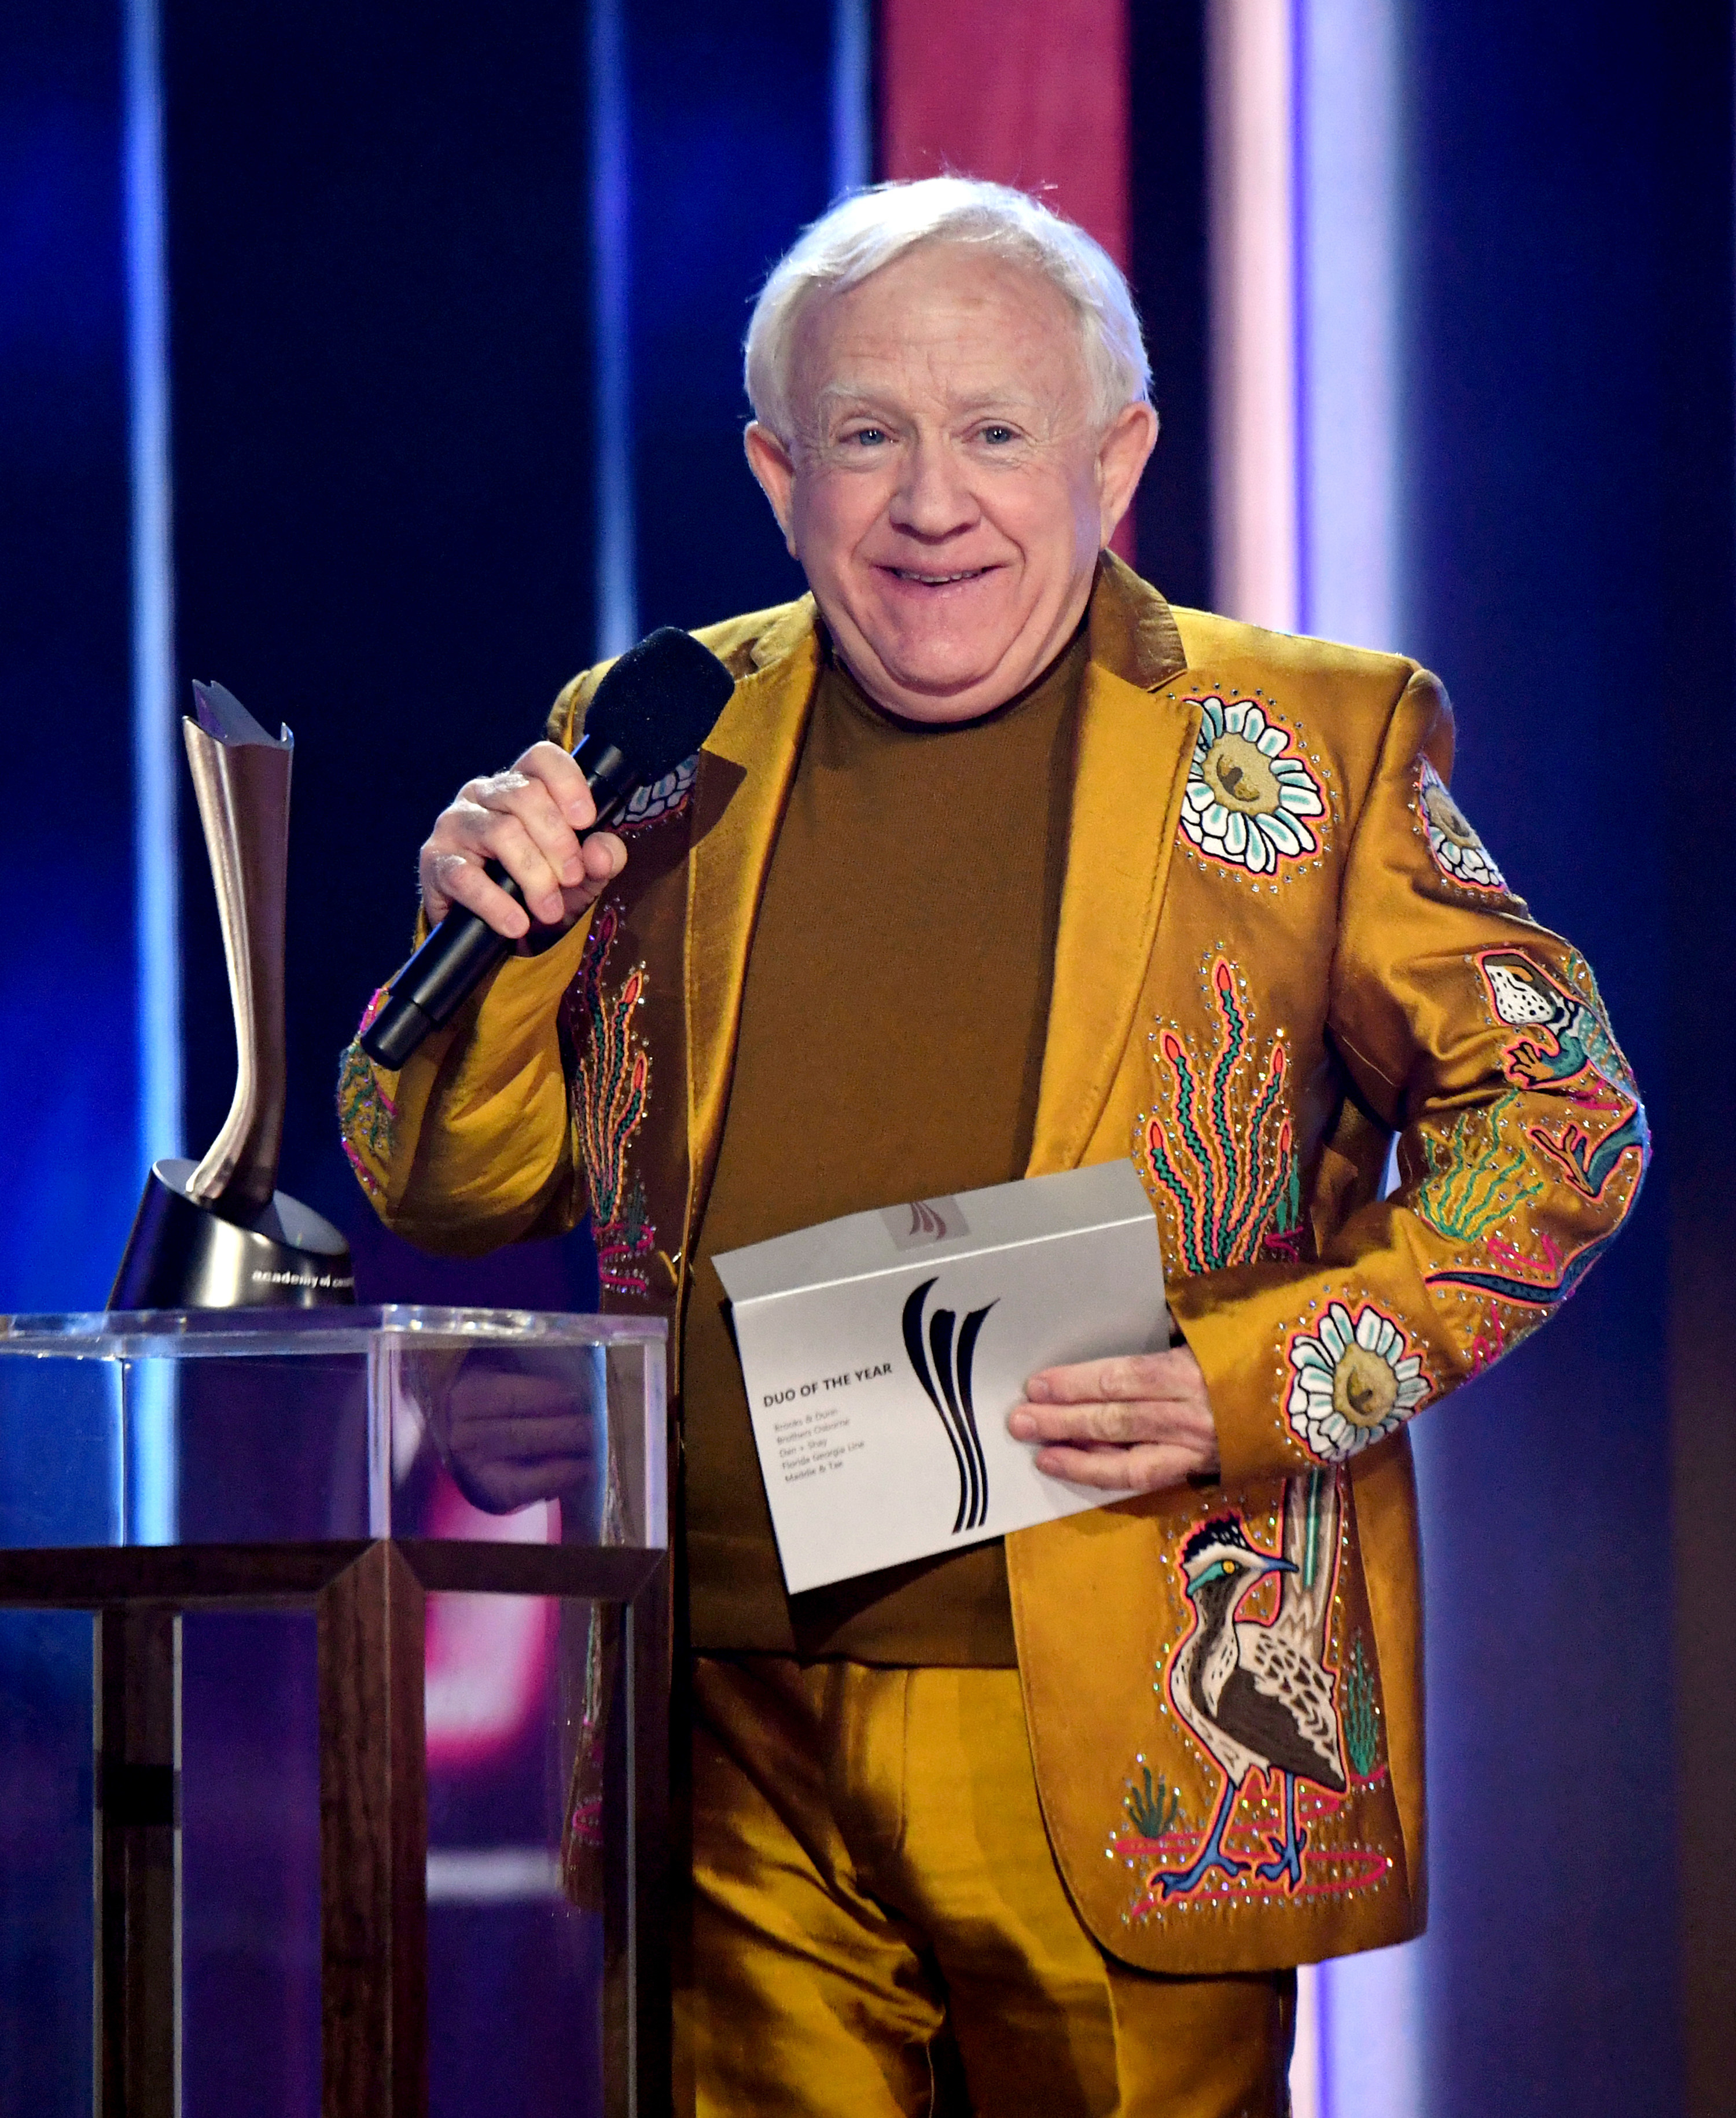 Leslie in a shiny embroidered suit with matching shirt while presenting an award